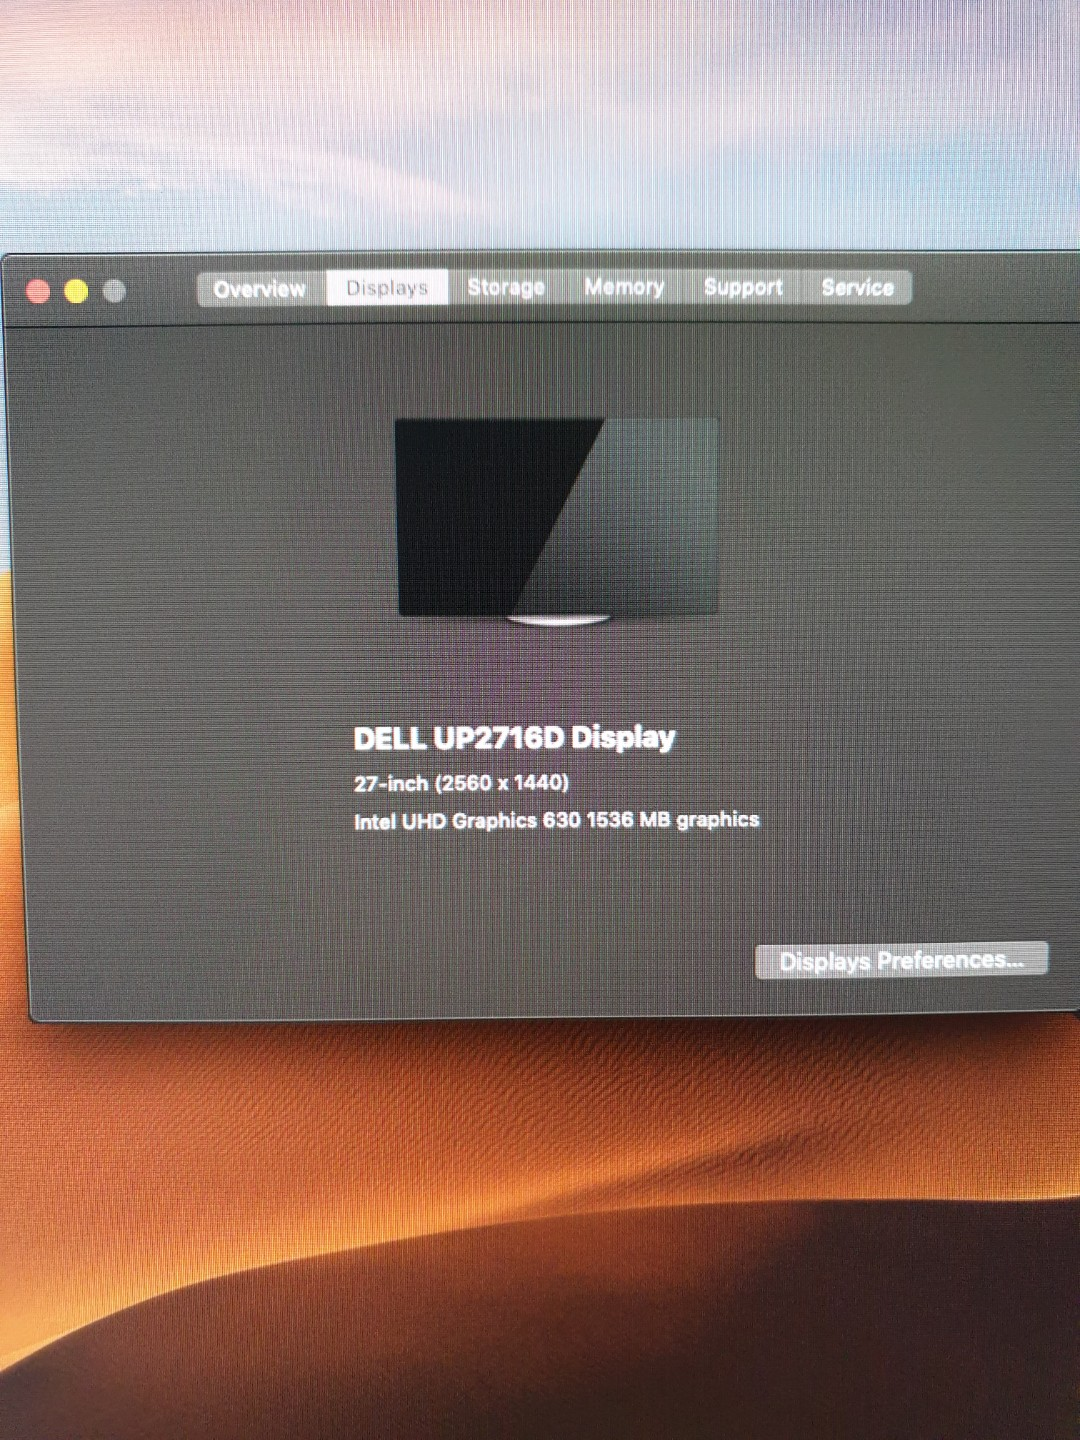 Dell Up2716d Display Monitor